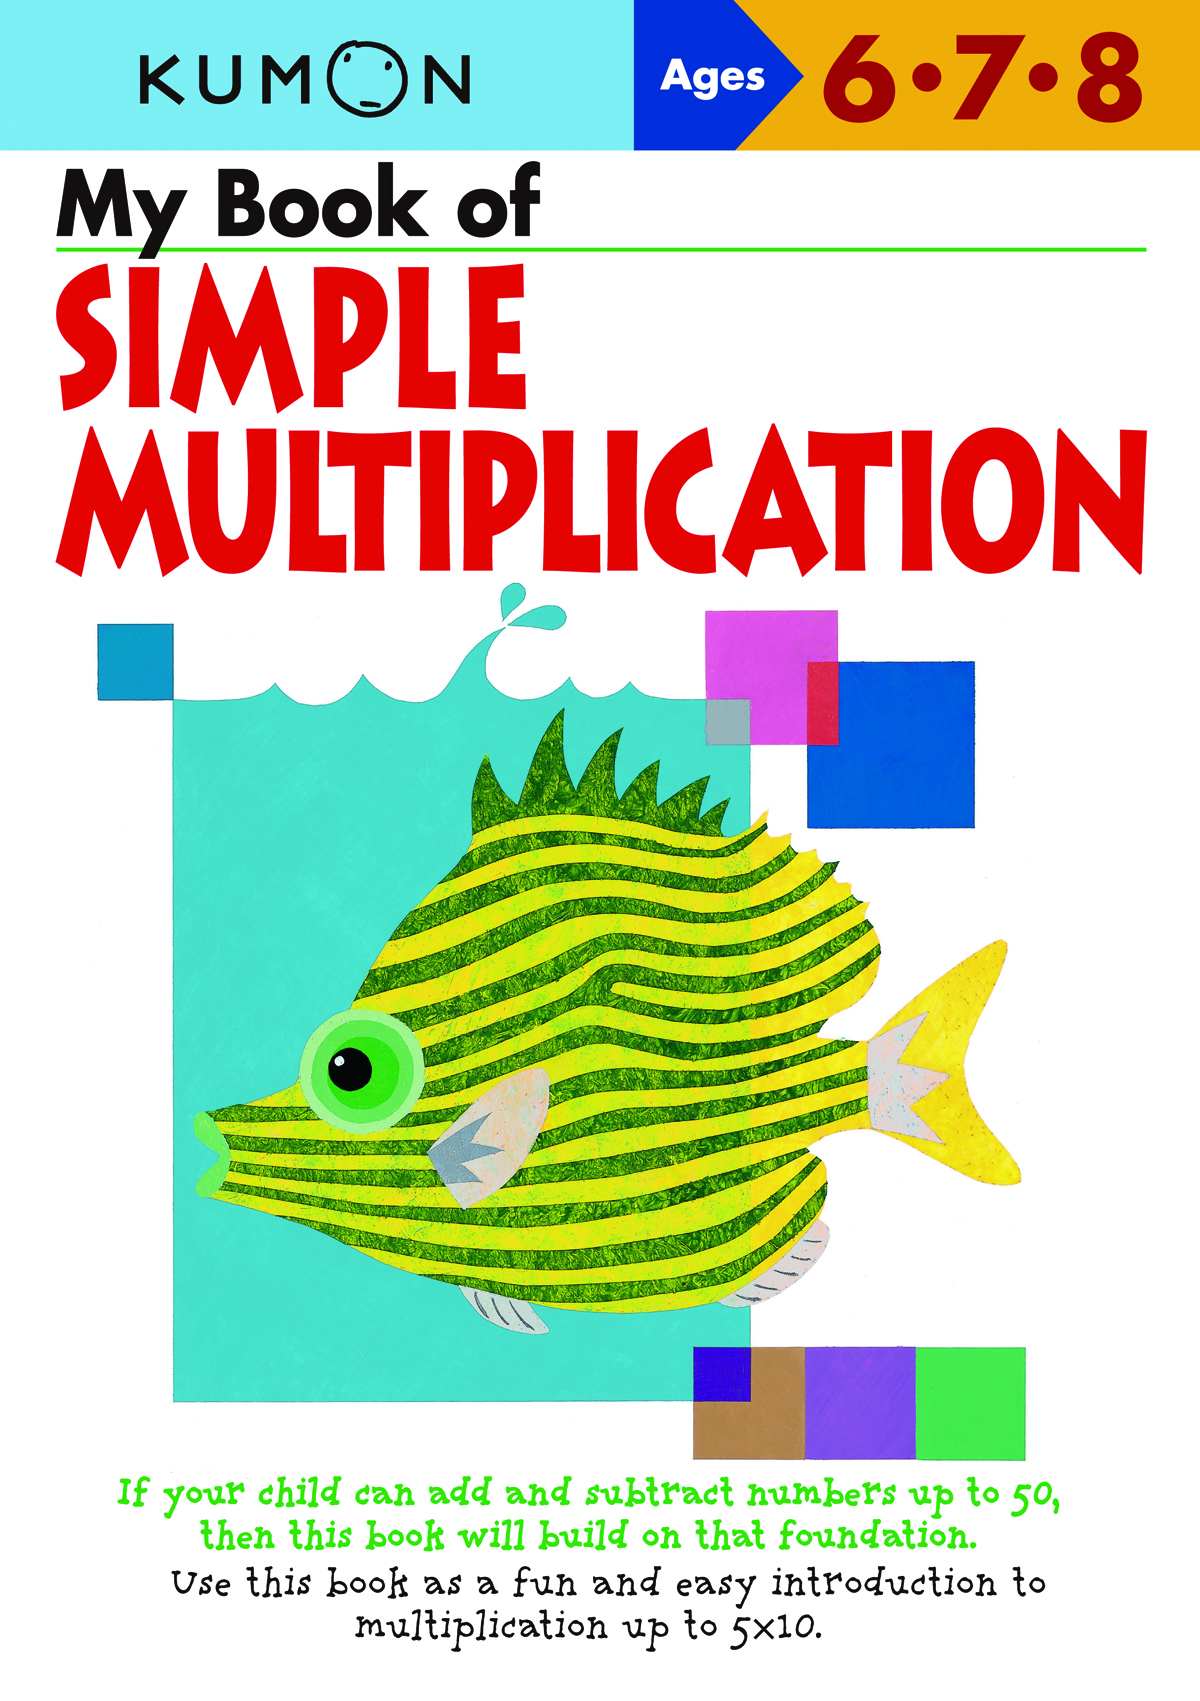 My Book of Simple Multiplication